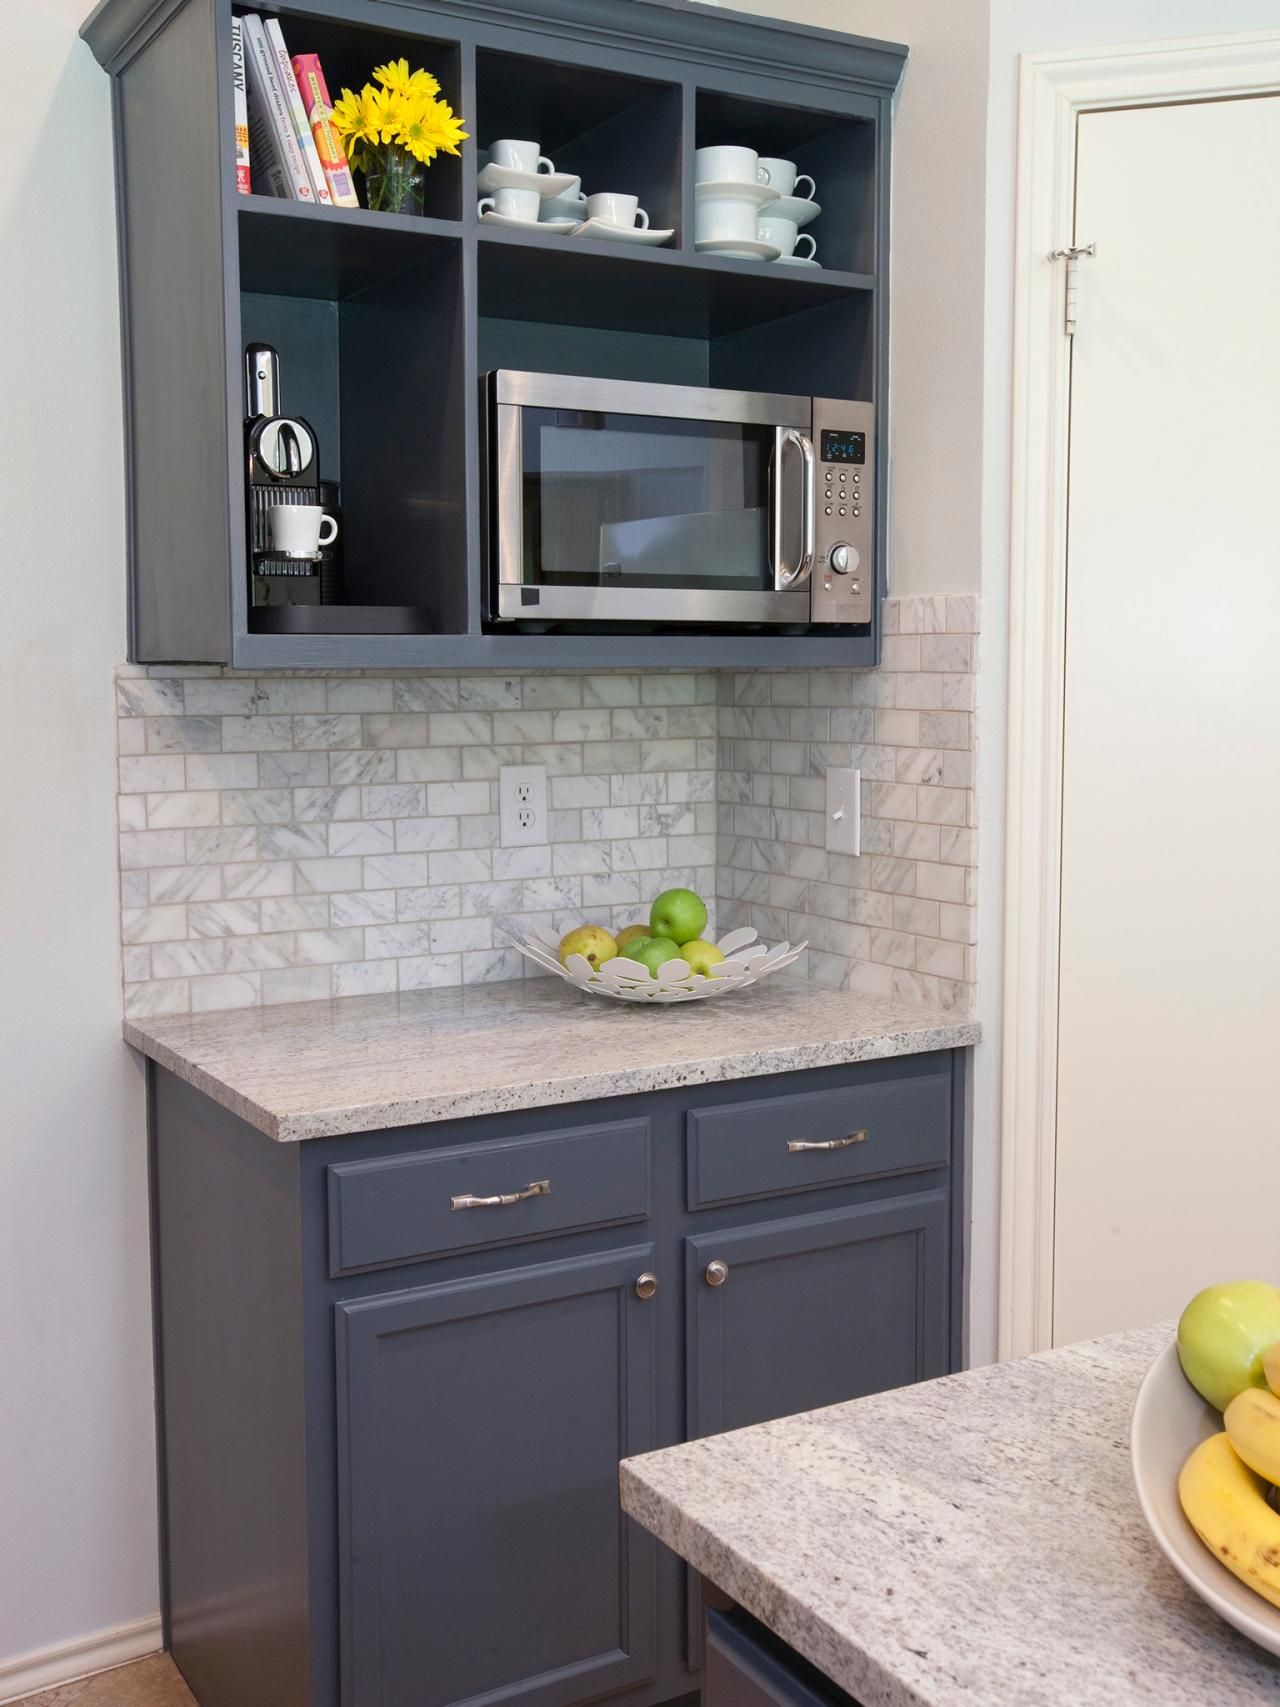 42++ Wall cabinets for microwave inspiration